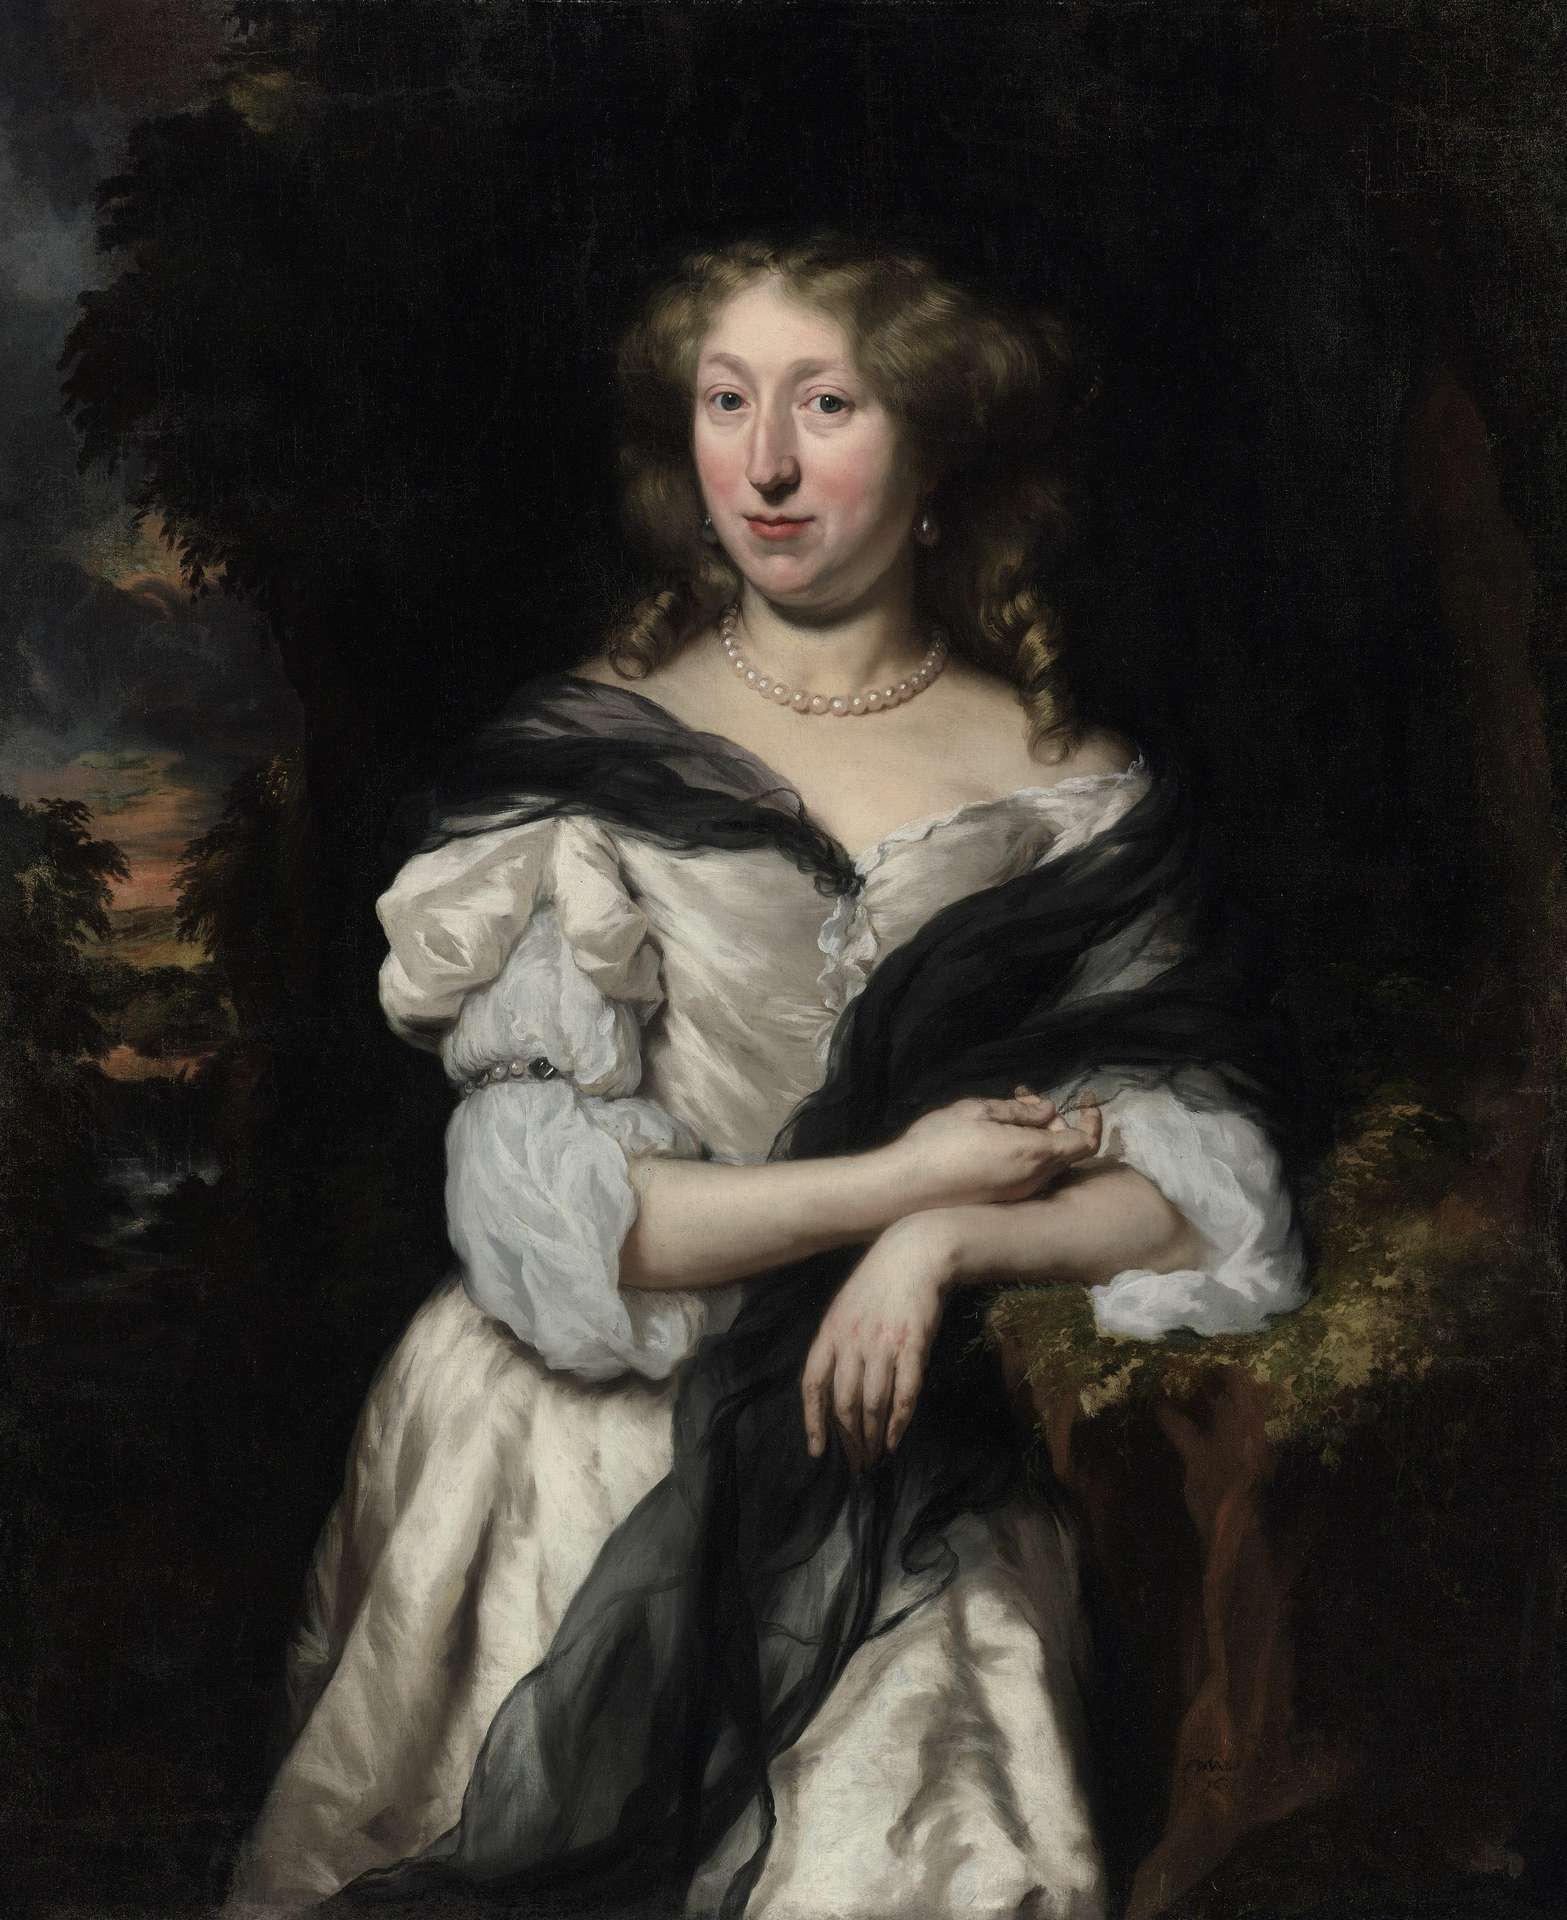 Nicolaes Maes (1634-1693), <em>Portrait of a Woman</em>, 1686, private collection